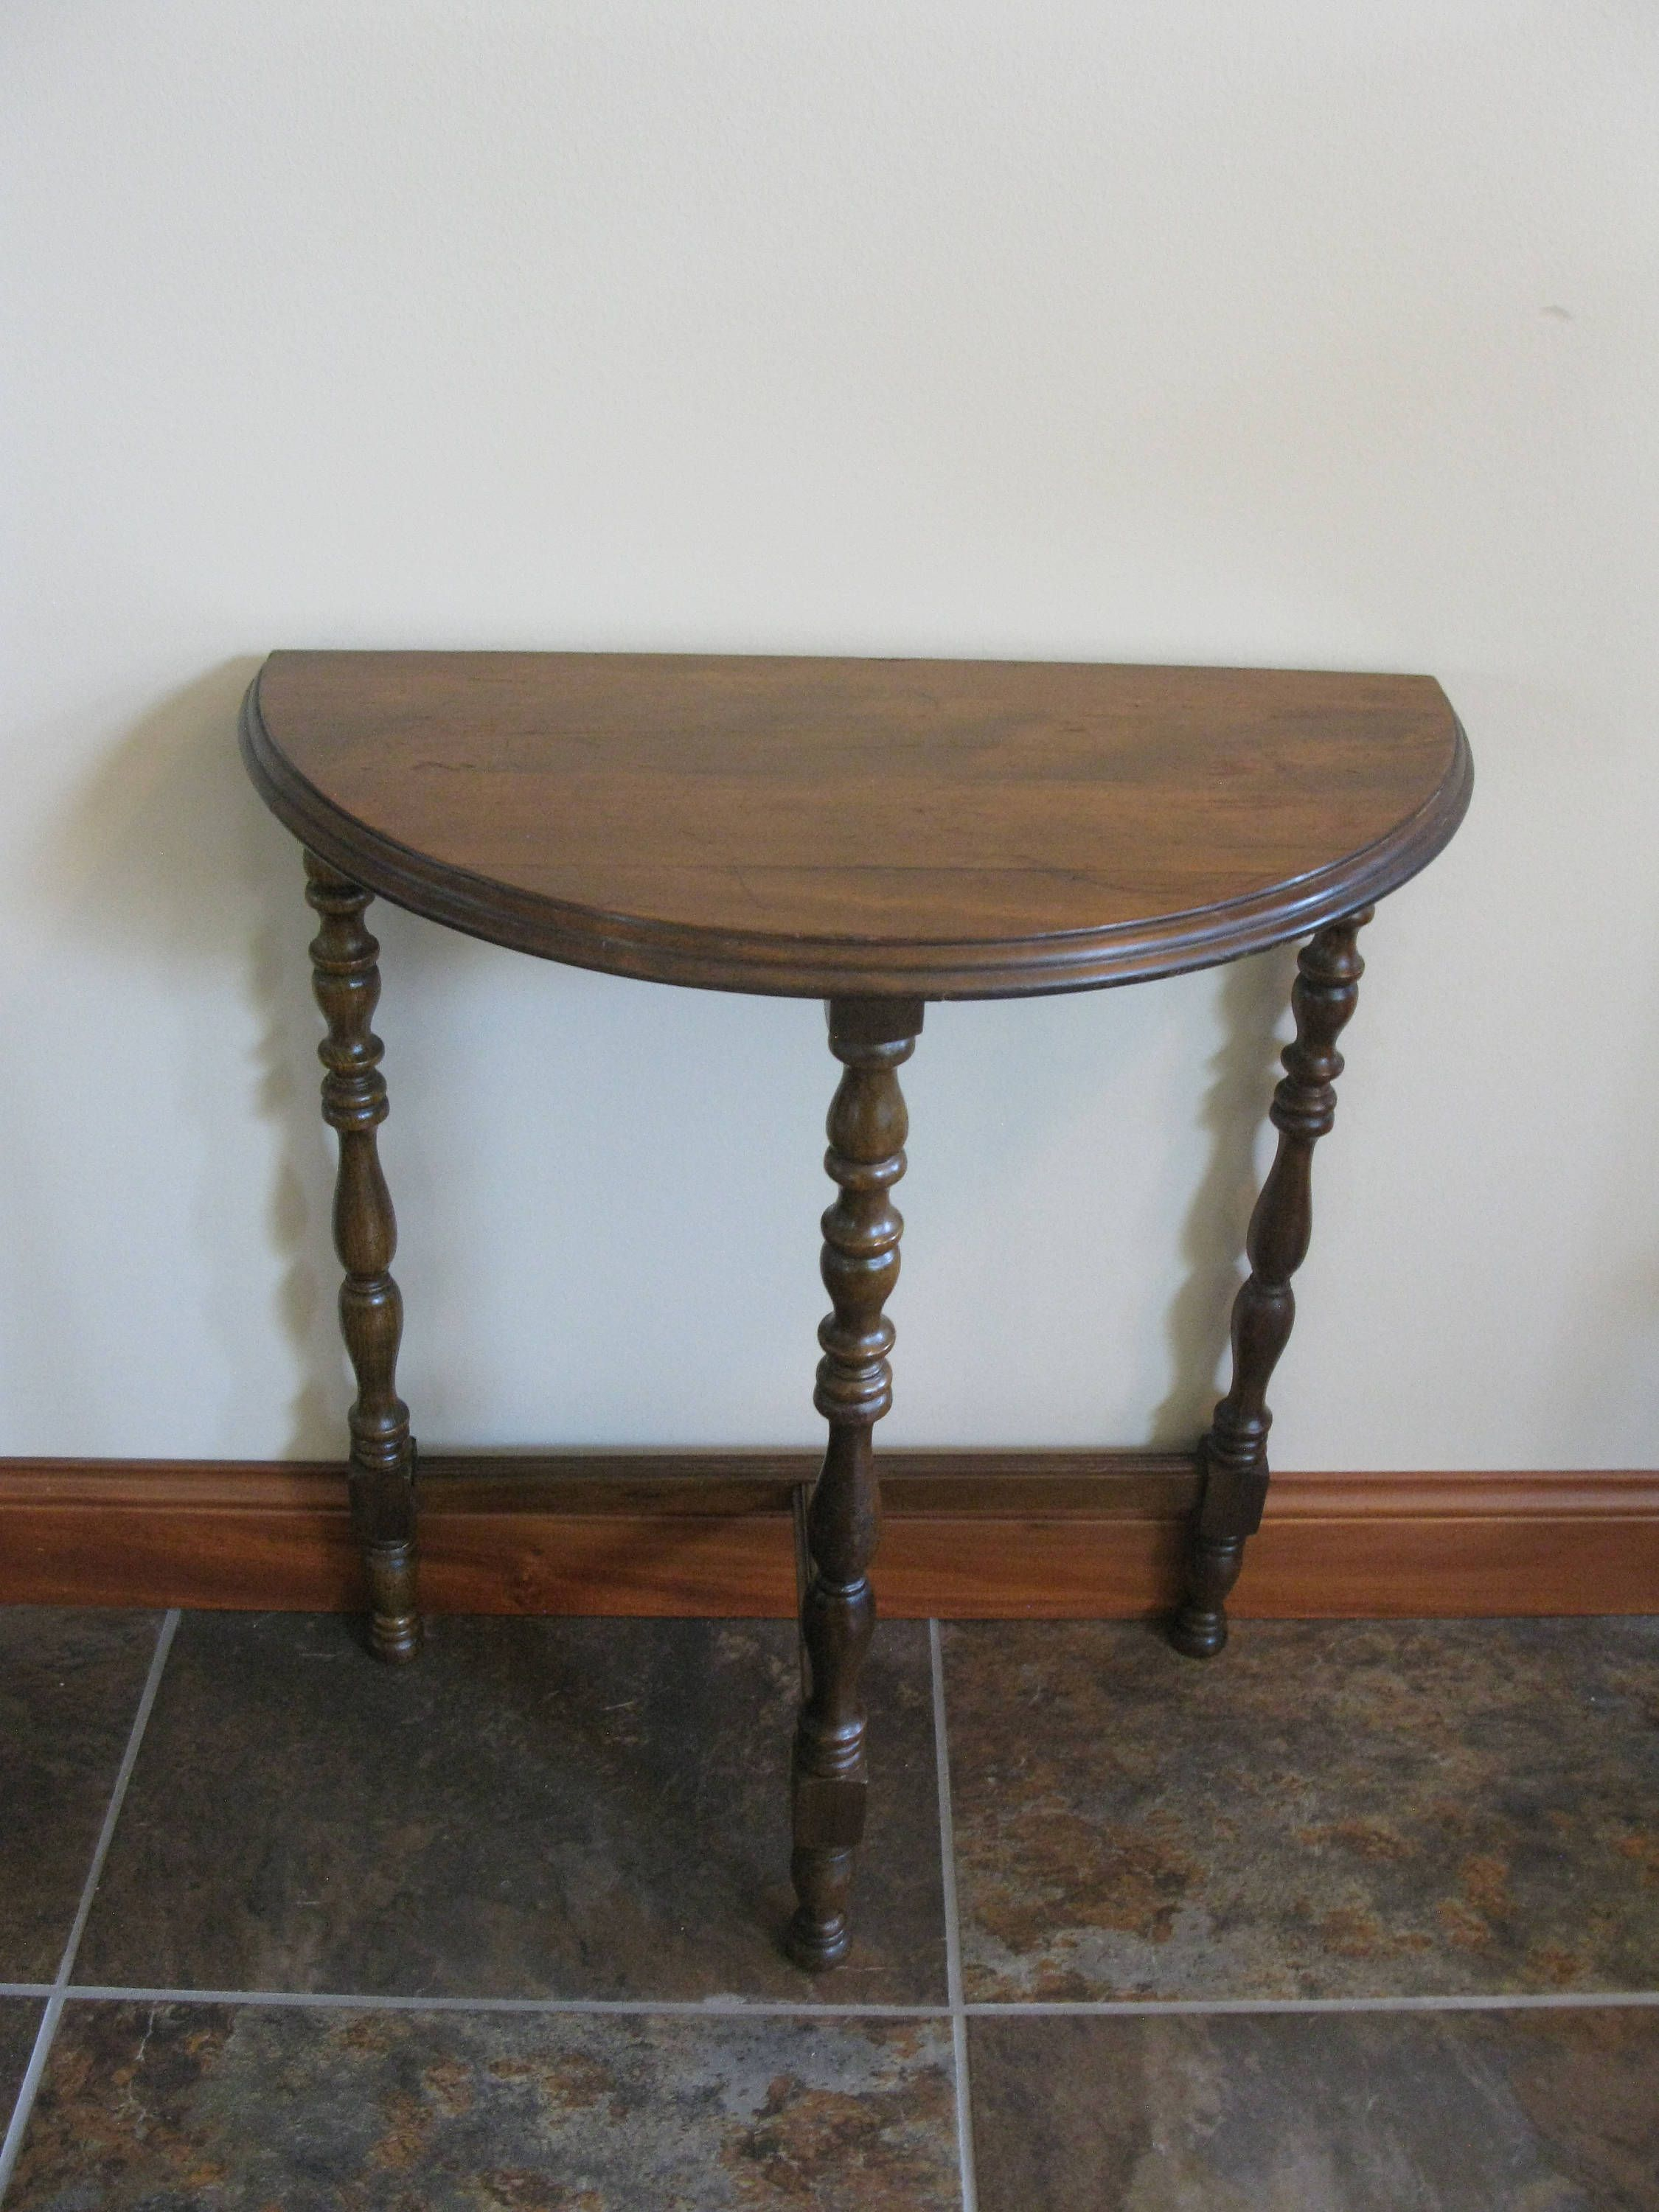 mango wood accent table the terrific awesome berwyn end vintage half moon side legged small metal and rustic brown threshold turned legs walnut stain round edge oakiesclaptrap